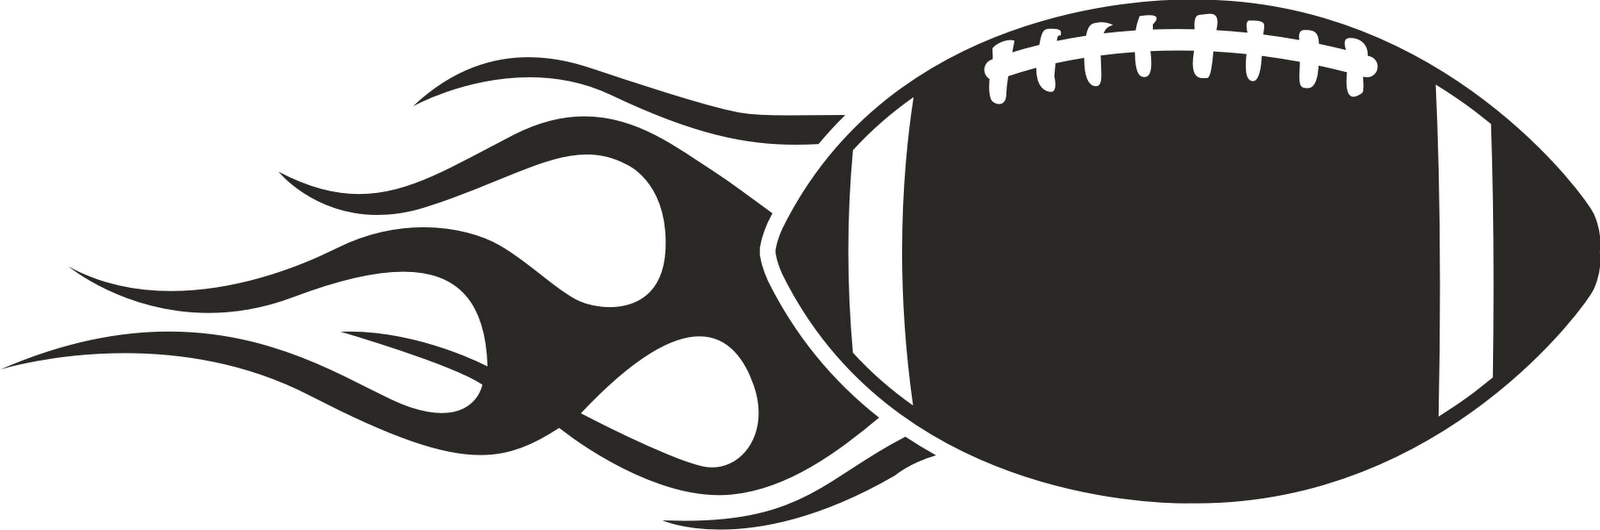 Black And White Football Clipart.